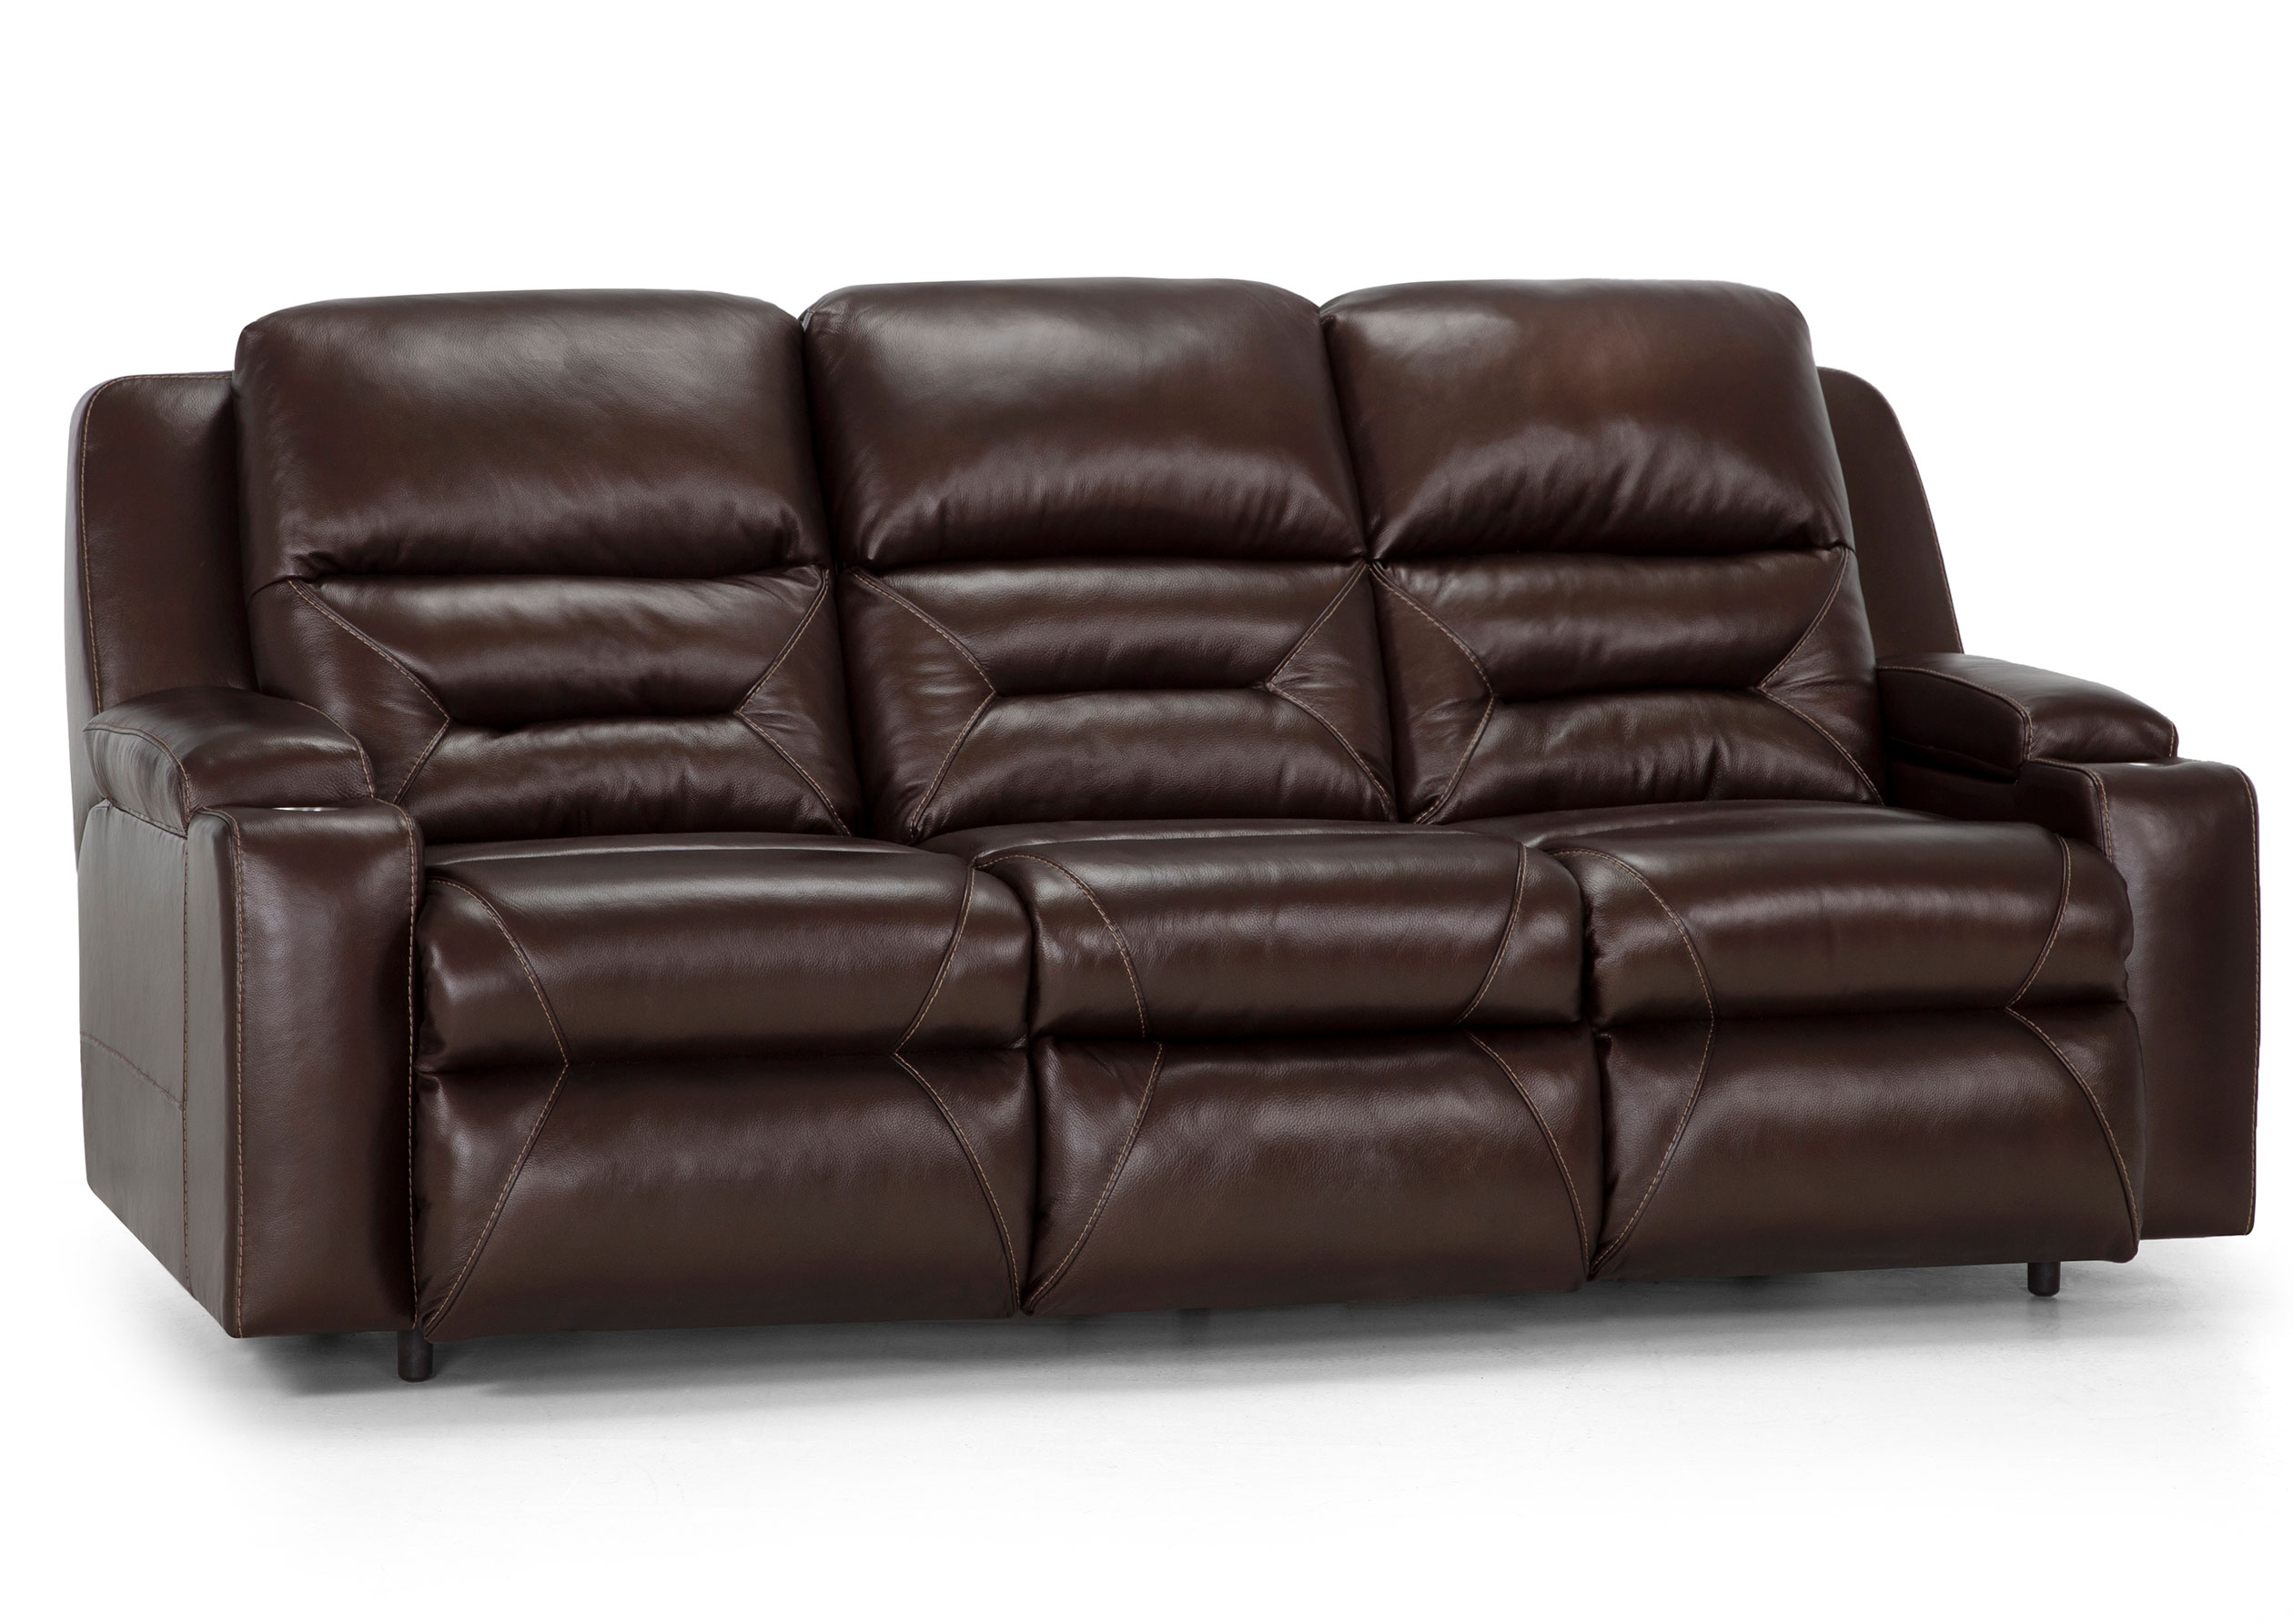 Pleasing Beacon Leather Reclining Sofa W Power Recline Sofas And Dailytribune Chair Design For Home Dailytribuneorg